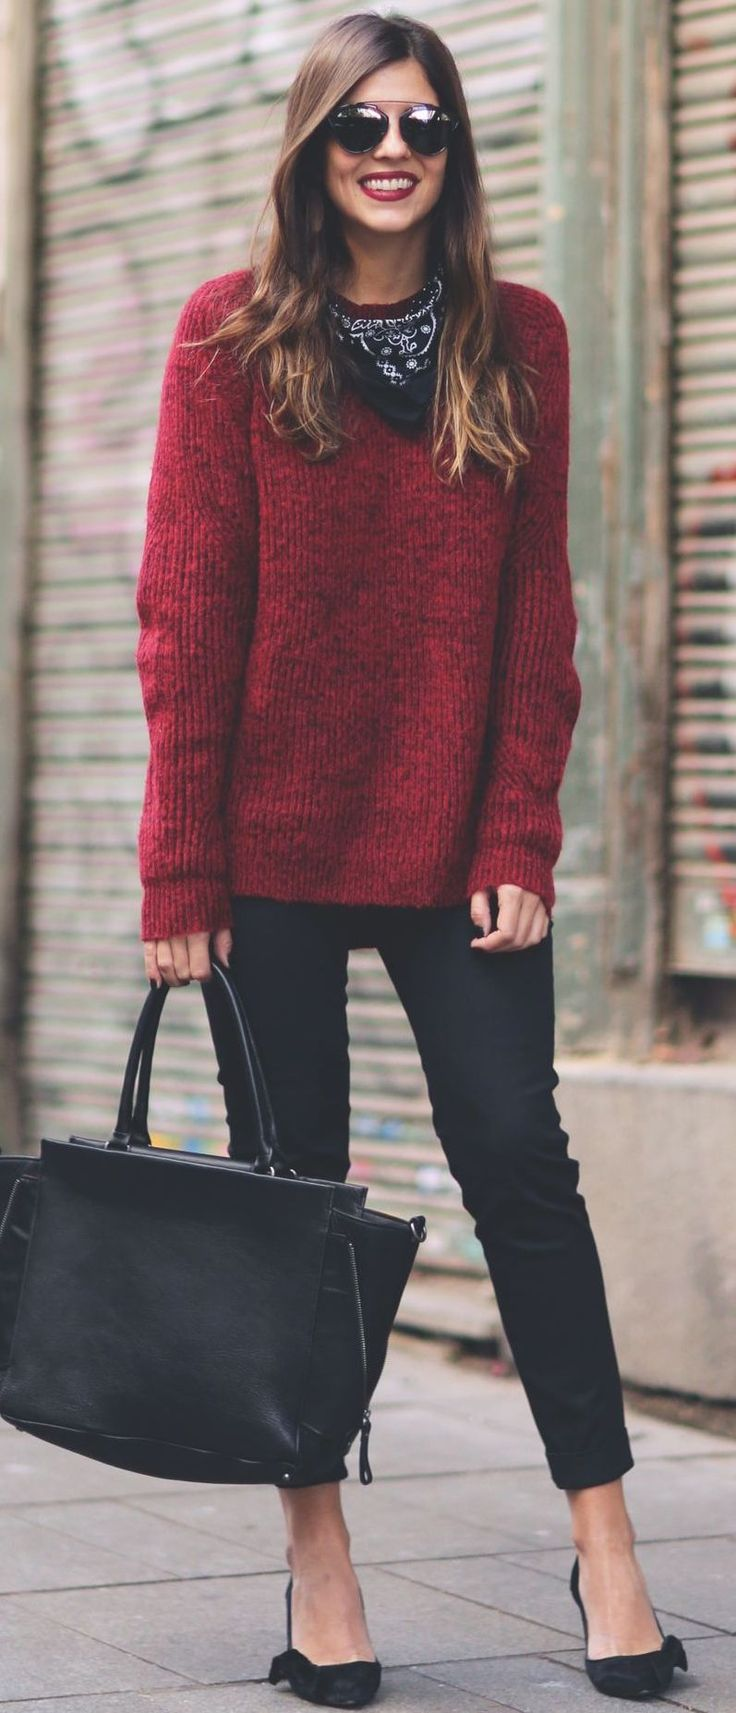 261 best Style - sweaters images on Pinterest | Accessories ...